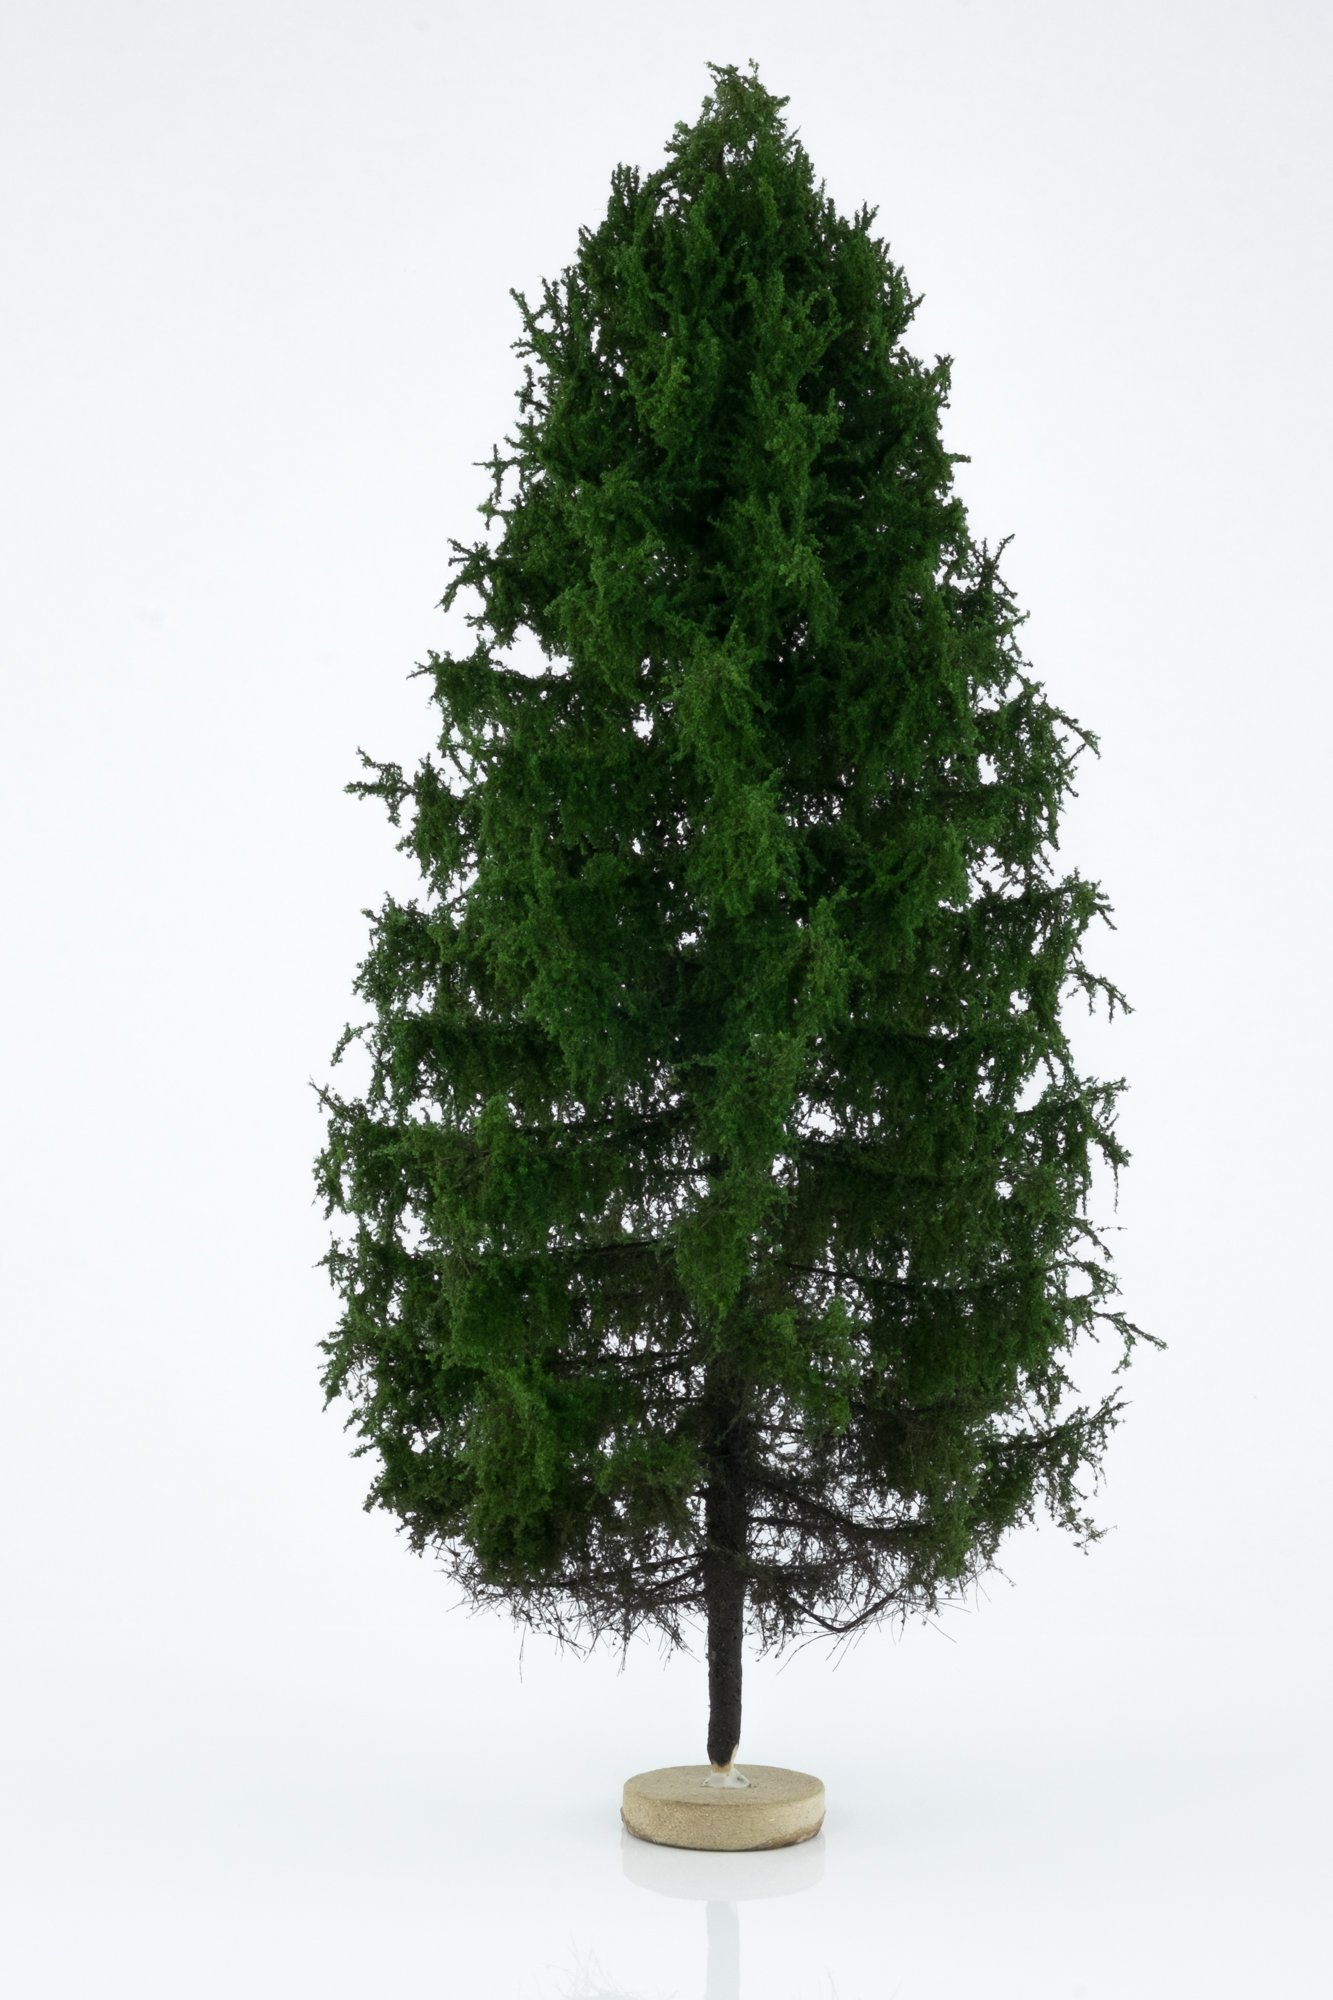 Hand-made, green, larch tree model. Size between 26 and 28 cm. Made from high quality model supplies by Primo Models.